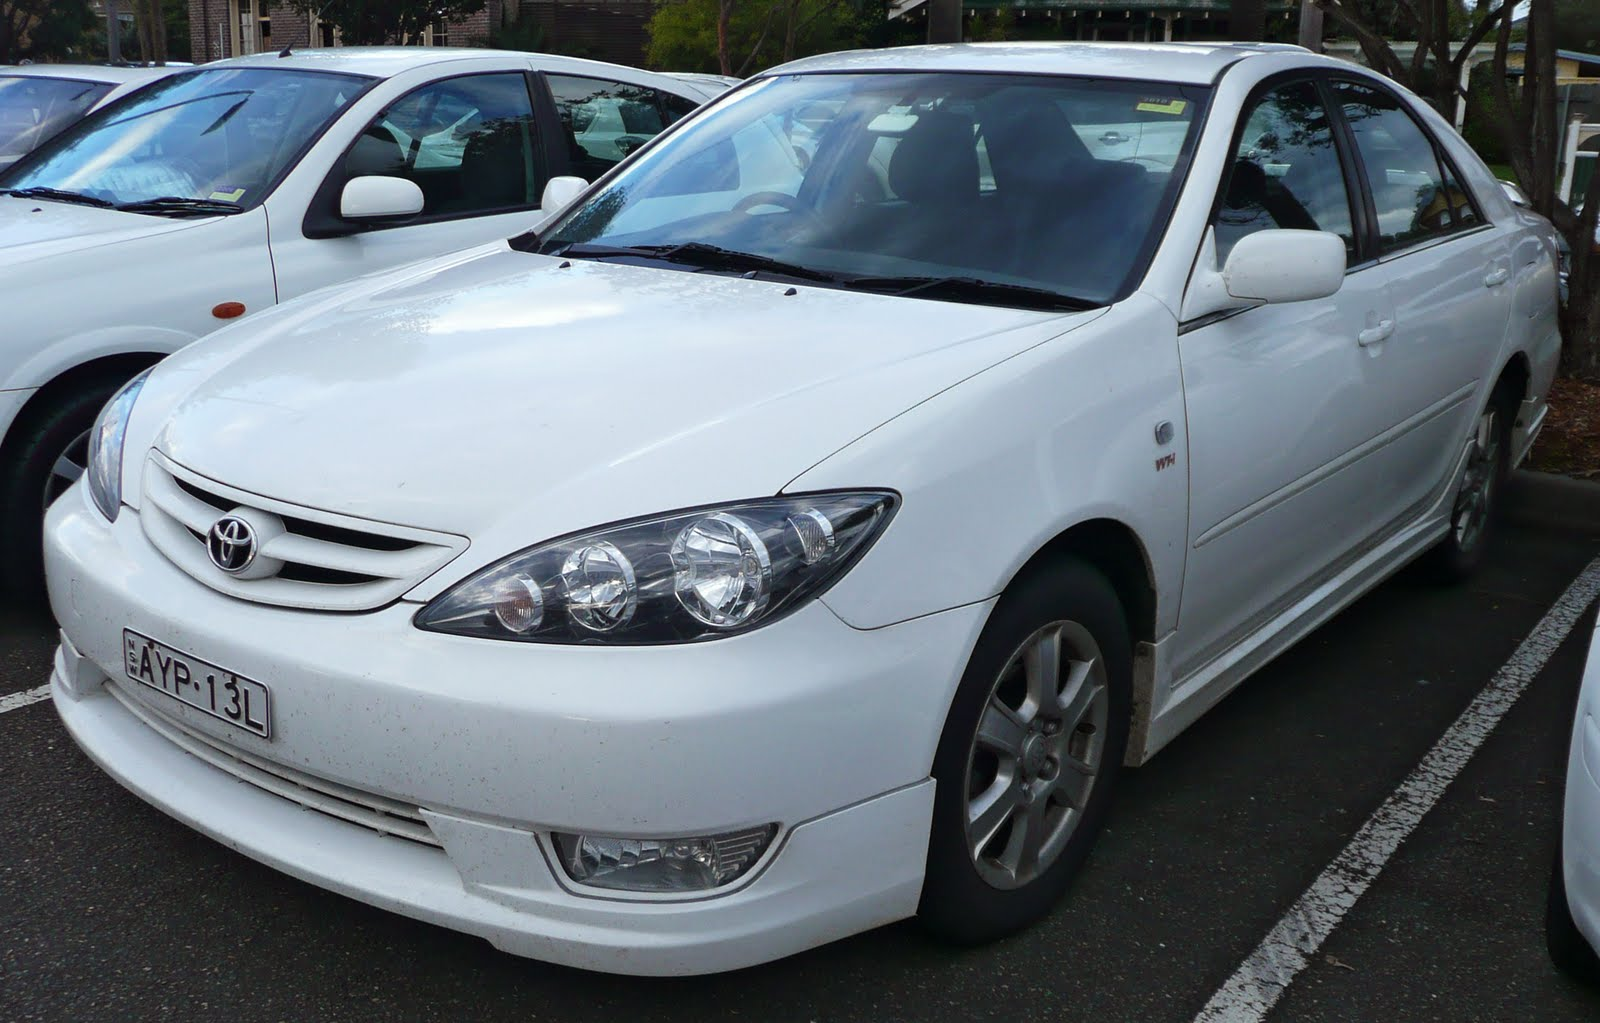 2005 camry owners manual pdf